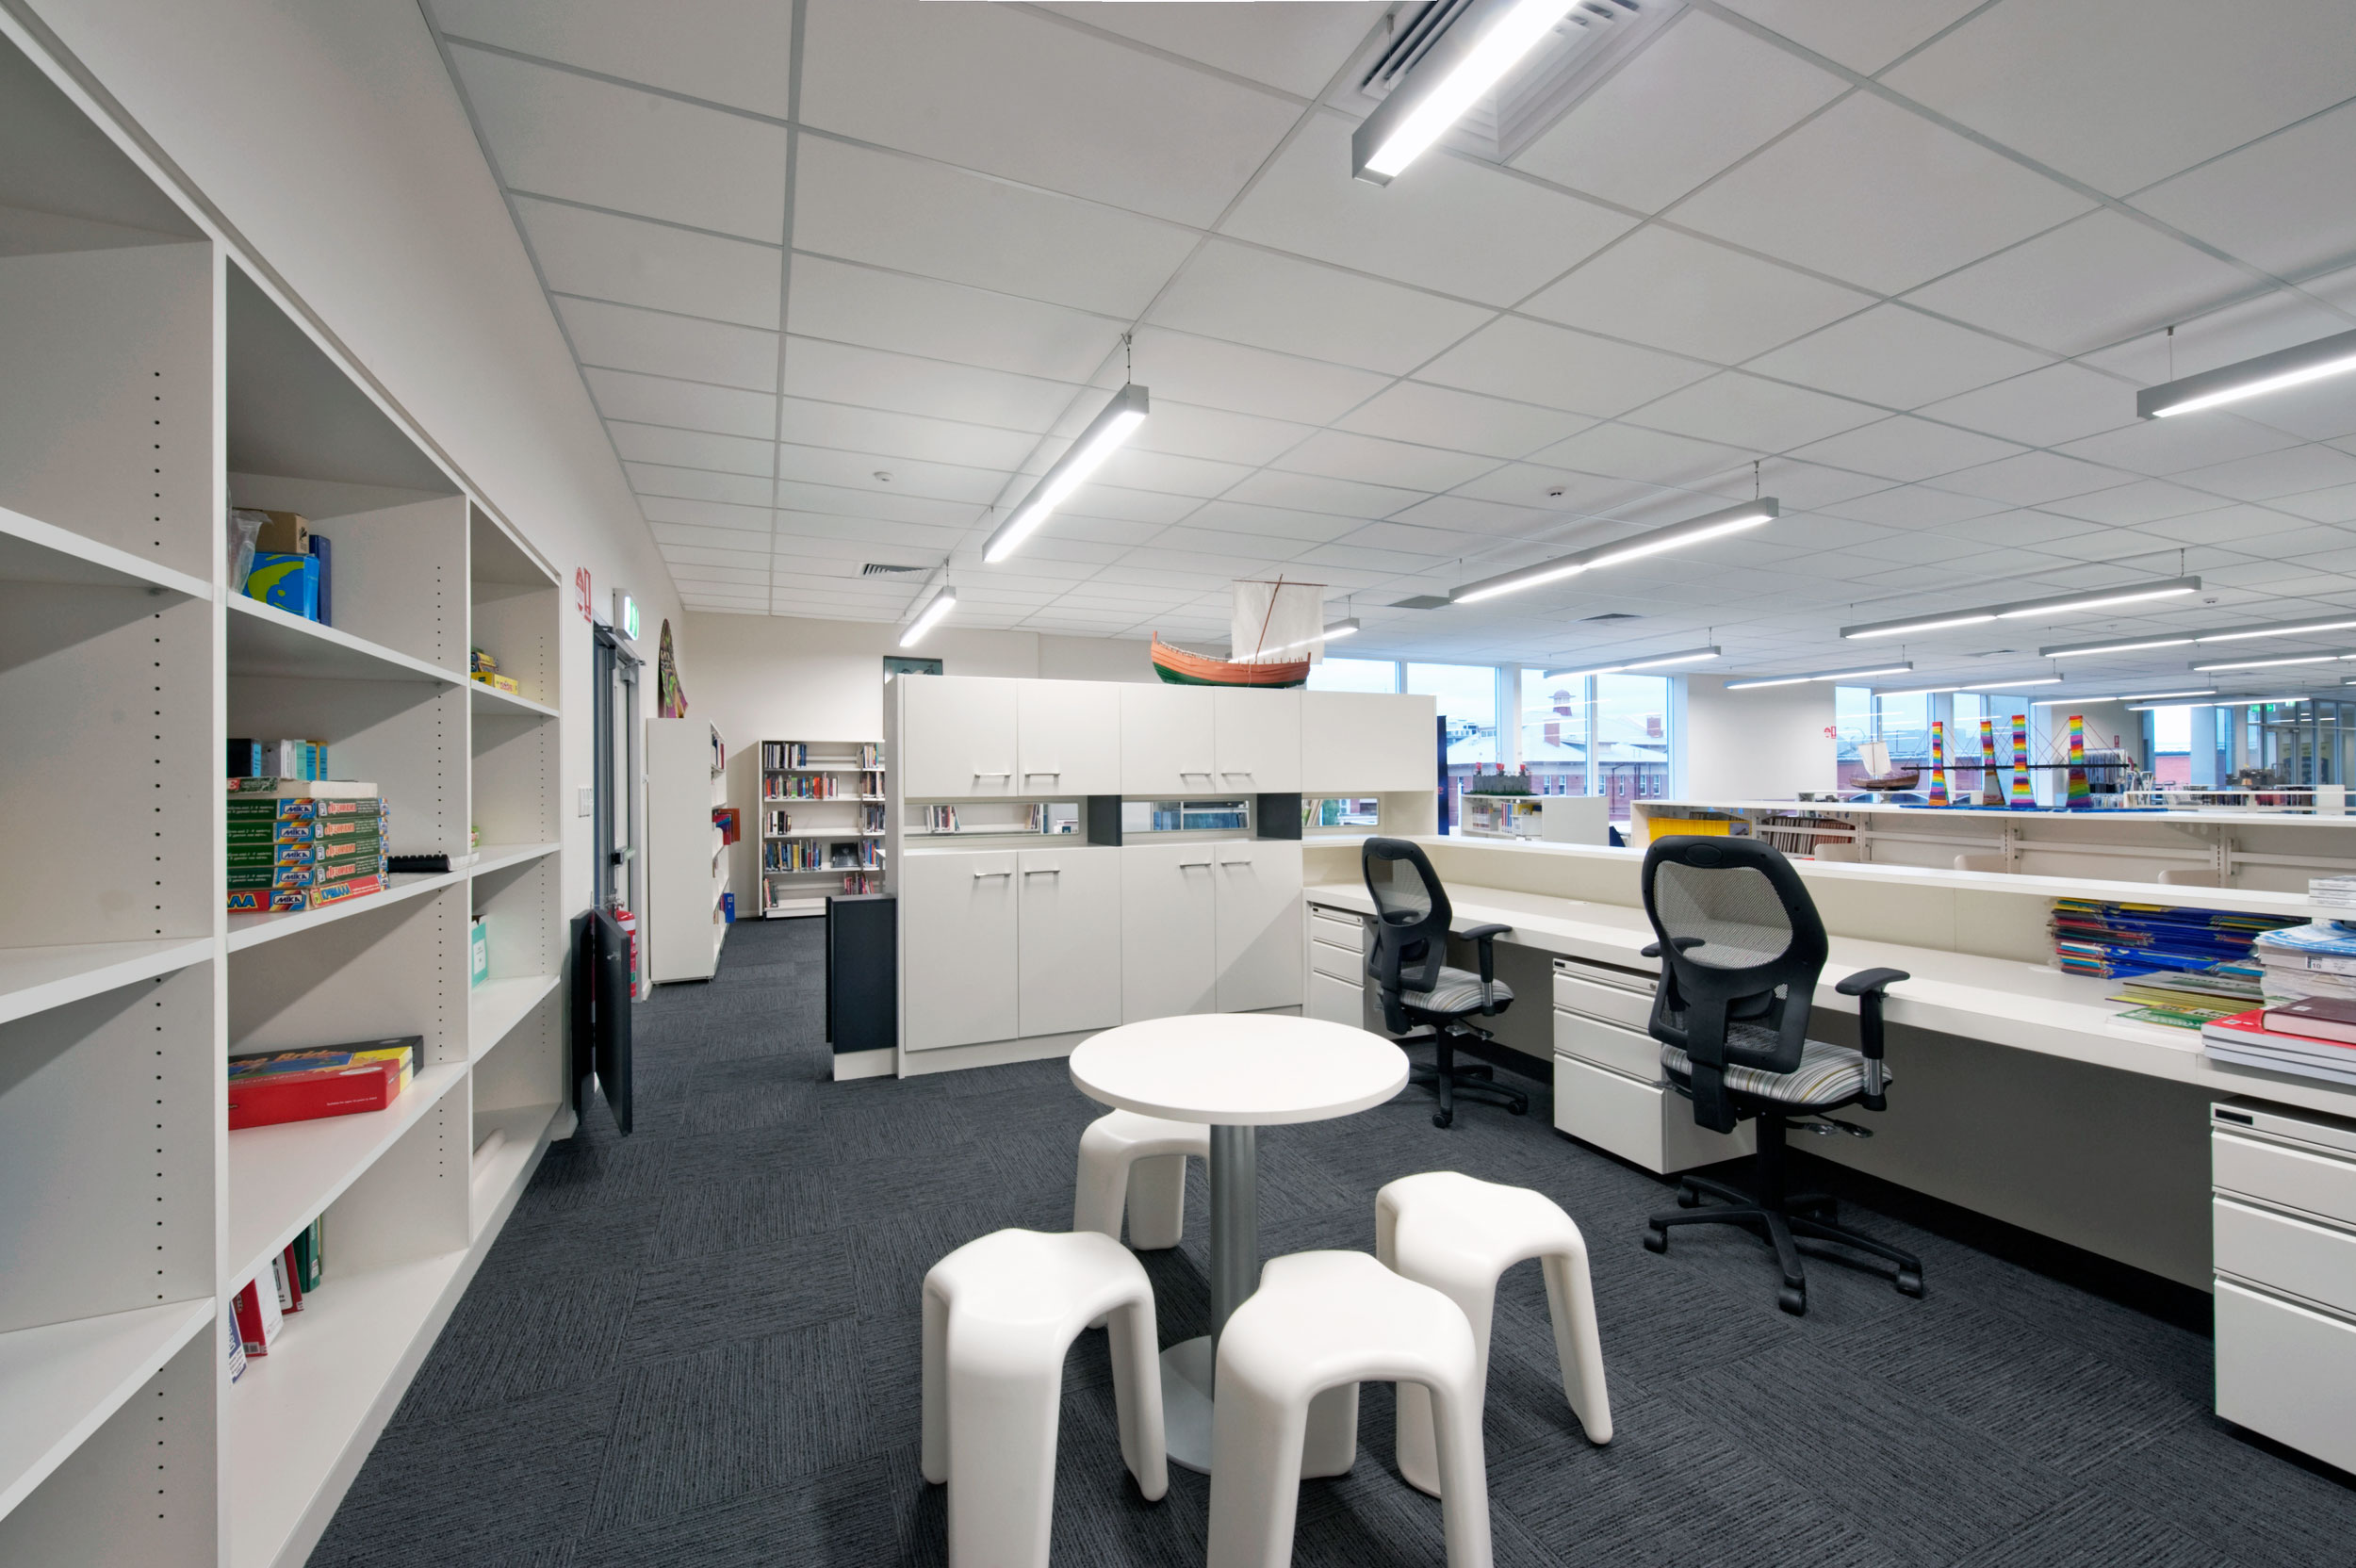 A flexible, modern fit-out with high visibility enables staff to perform at their best